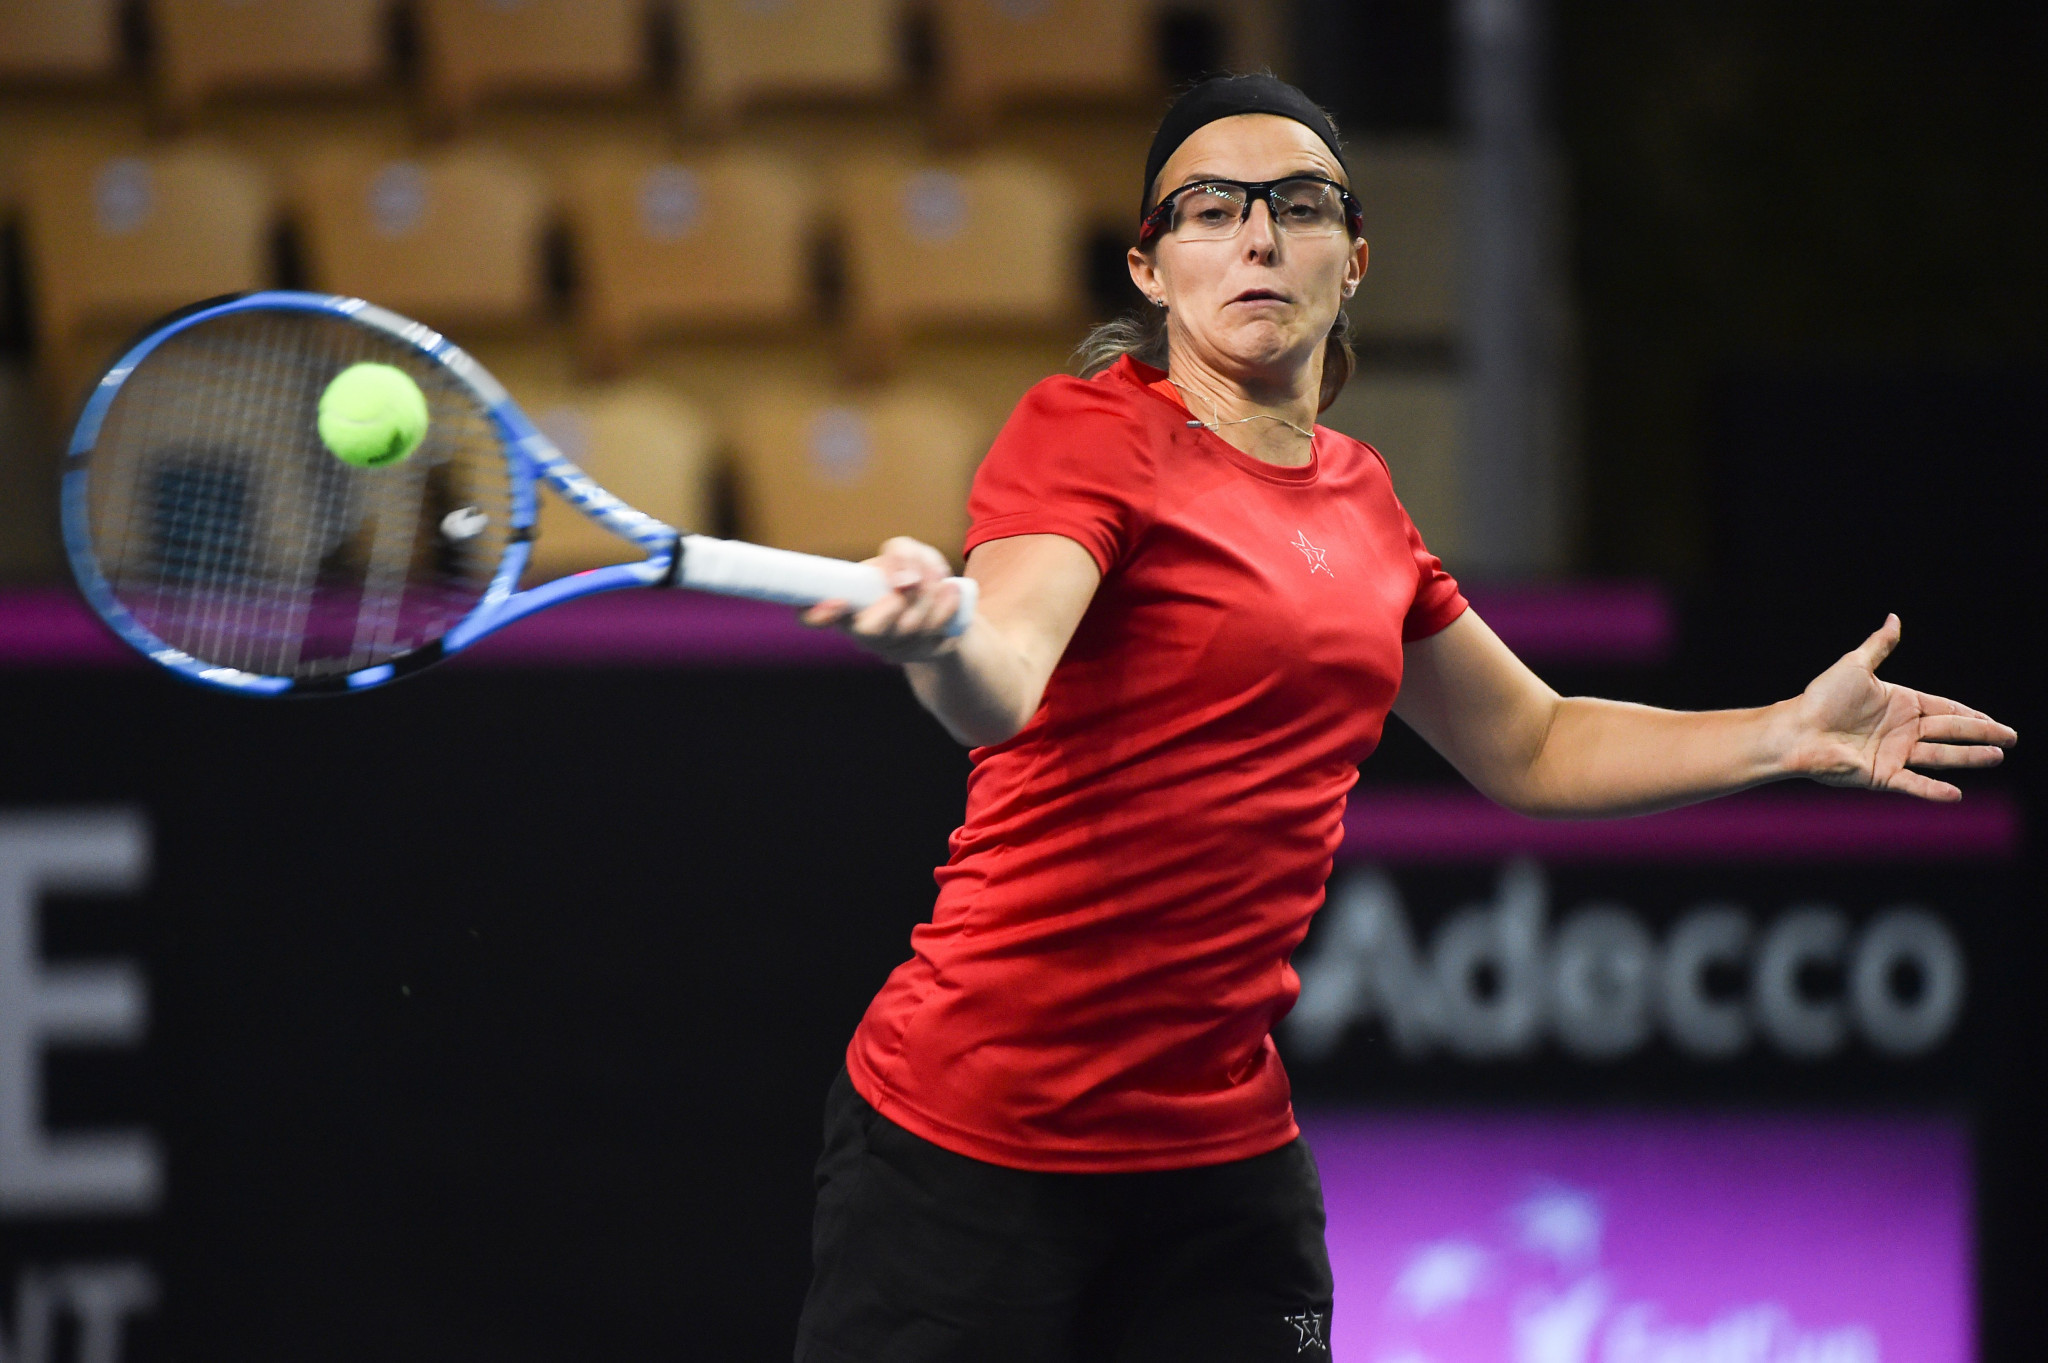 Flipkens earns second round place at Miami Open